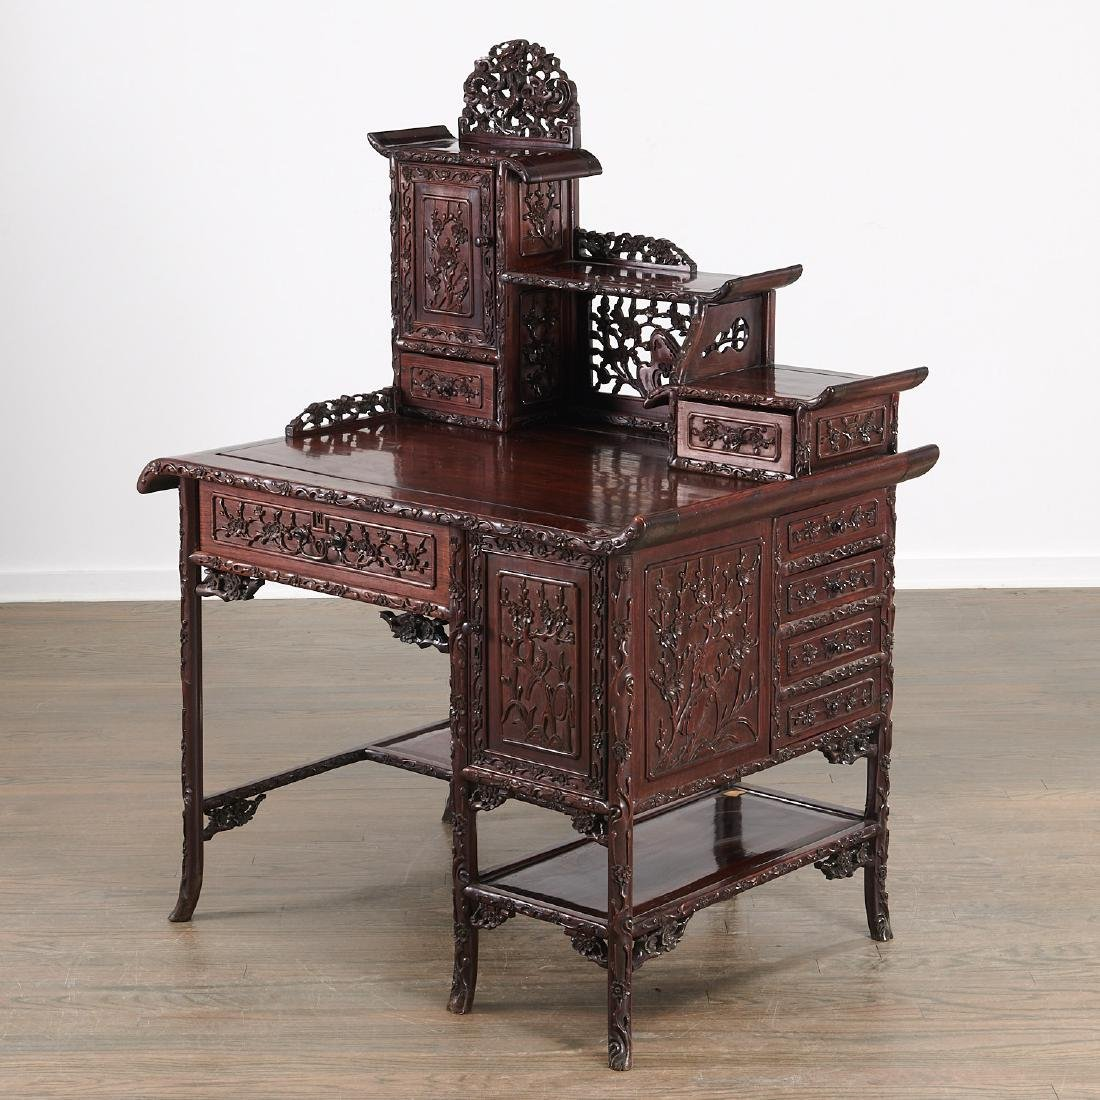 Fine Chinese Export carved hardwood two-part desk - 2